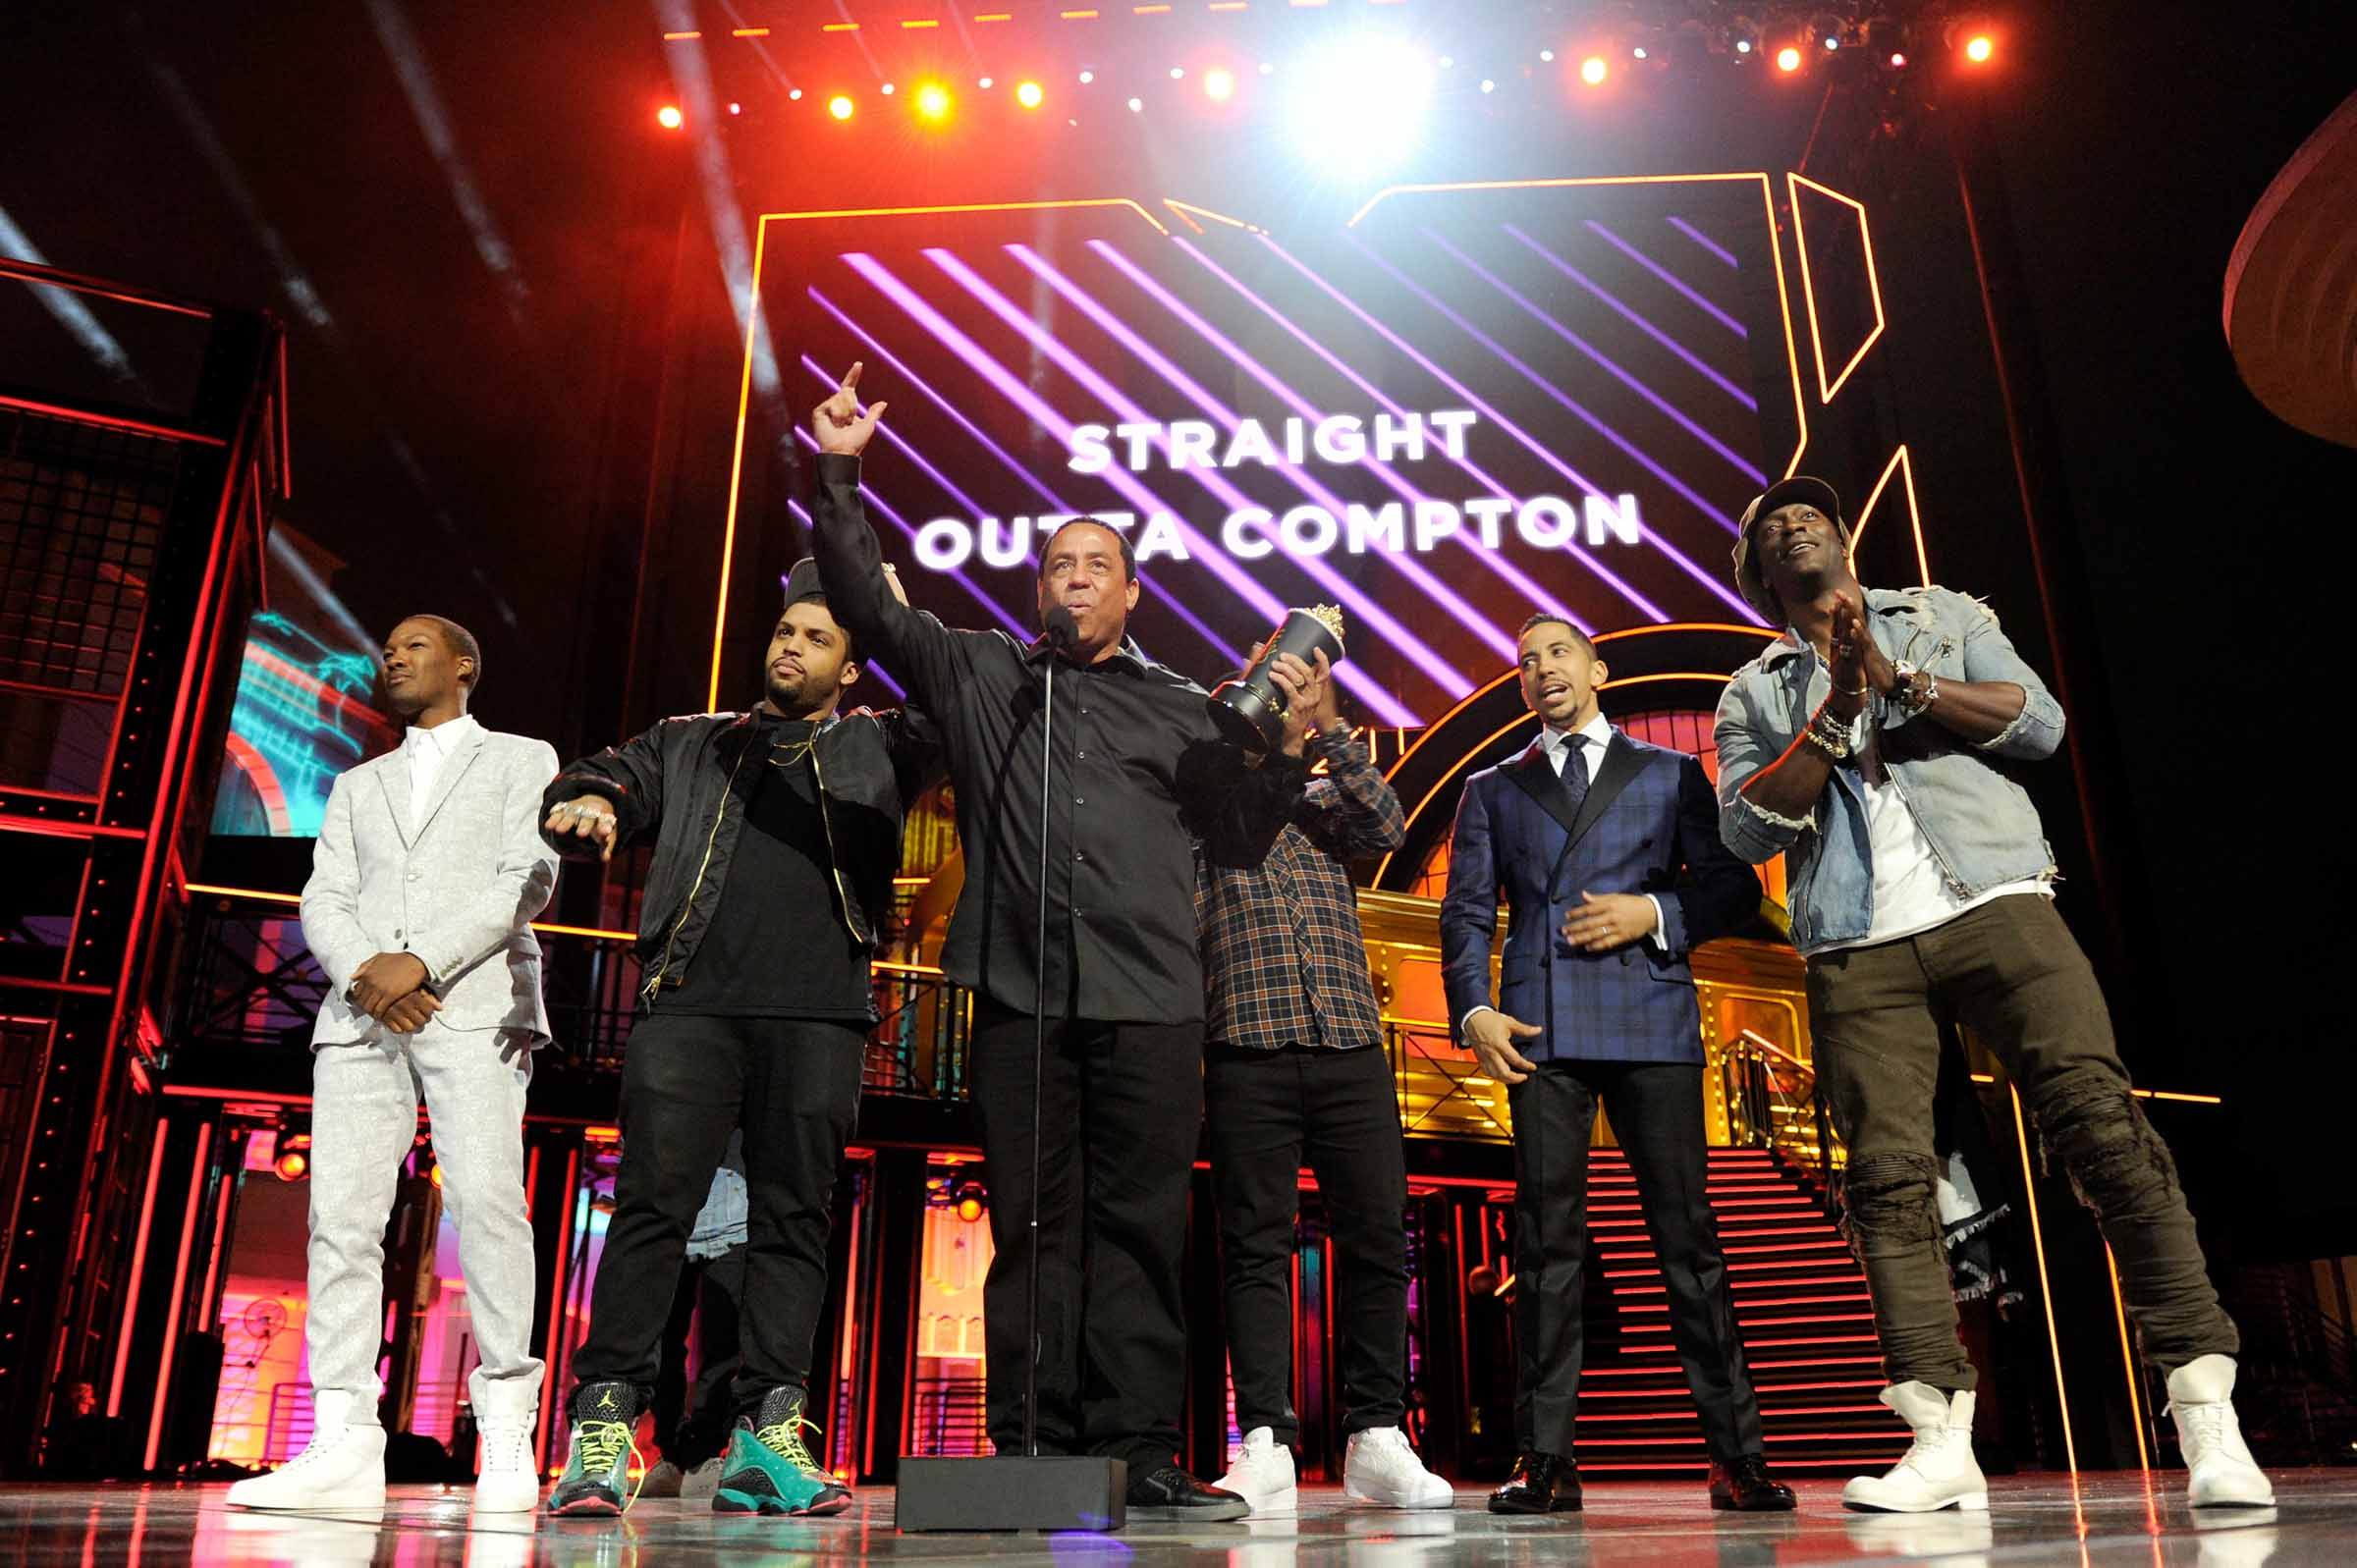 """BURBANK, CALIFORNIA - APRIL 09:  (L-R) Actor Corey Hawkins, actor Jason Mitchell, rapper DJ Yella, actor O'Shea Jackson Jr., actor Neil Brown Jr. and Alda Hodge accept the True Story award for 'Straight Outta Compton' onstage during the 2016 MTV Movie Awards at Warner Bros. Studios on April 9, 2016 in Burbank, California.  MTV Movie Awards airs April 10, 2016 at 8pm ET/PT.  (Photo by Emma McIntyre/Getty Images for MTV)"""